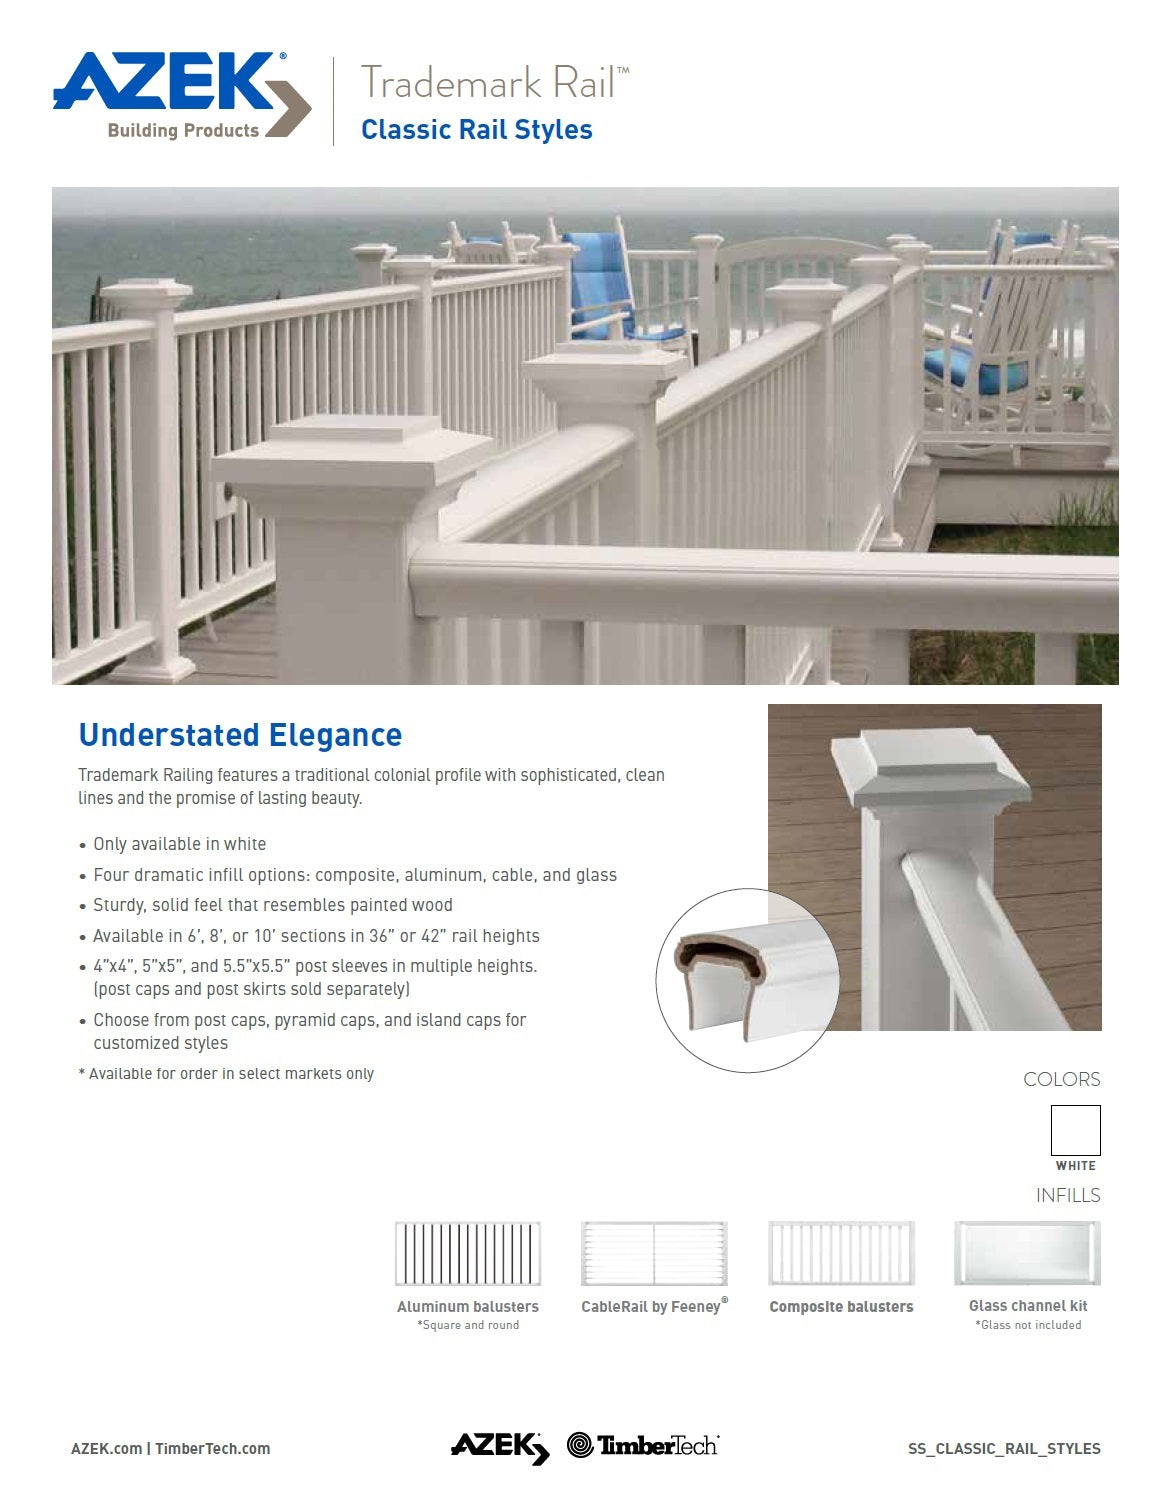 Azek Trademark Composite Railing System. Learn More Here